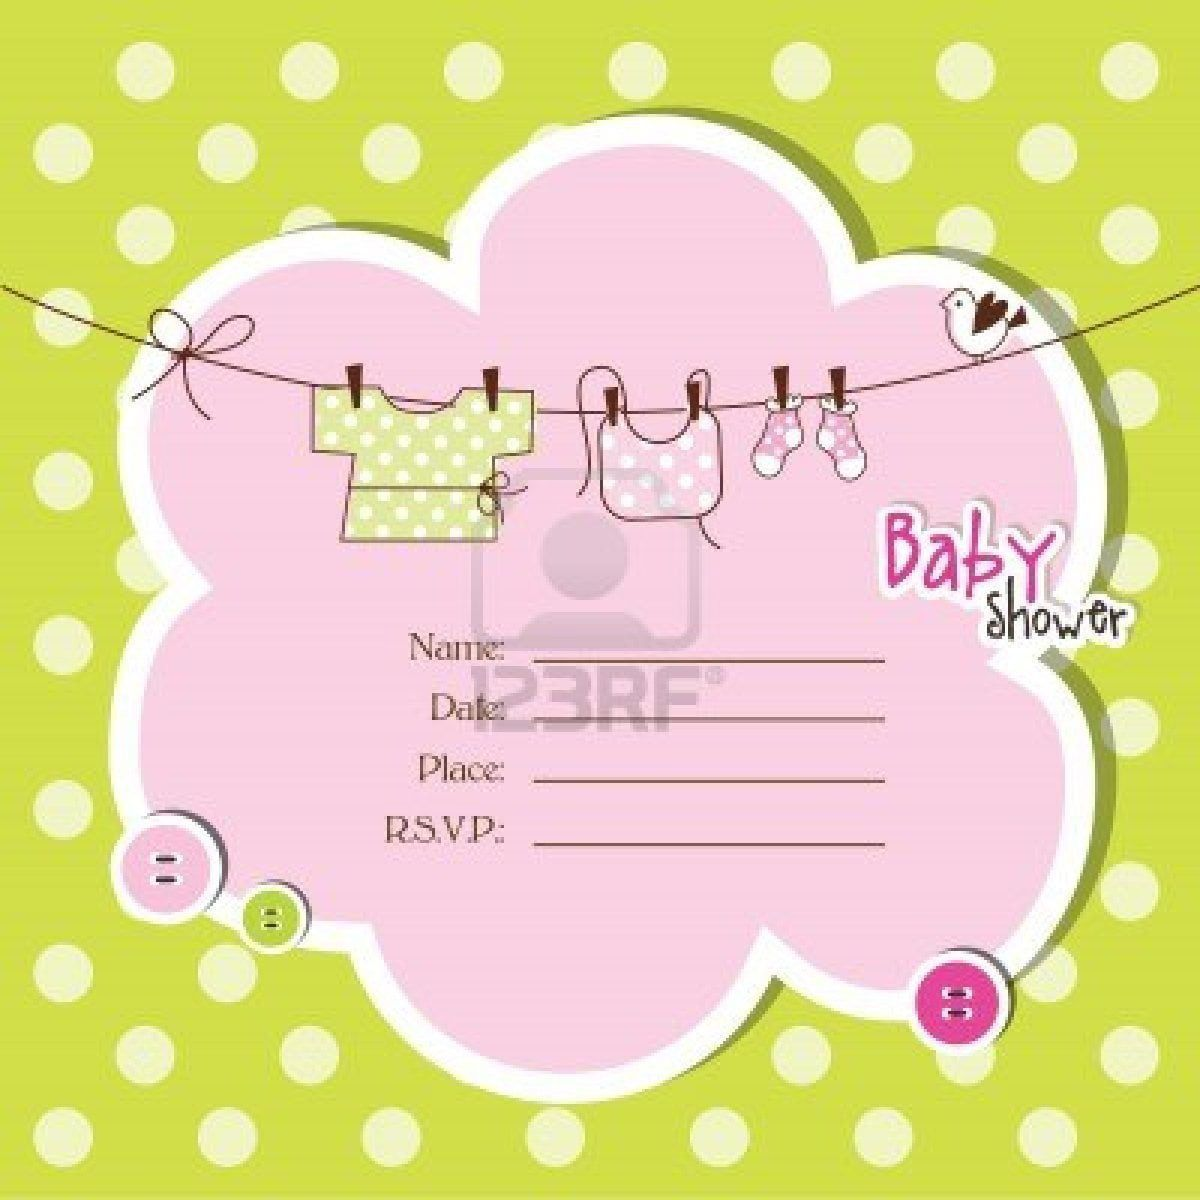 006 Formidable Free Editable Baby Shower Invitation Template For Word Highest Quality  MicrosoftFull